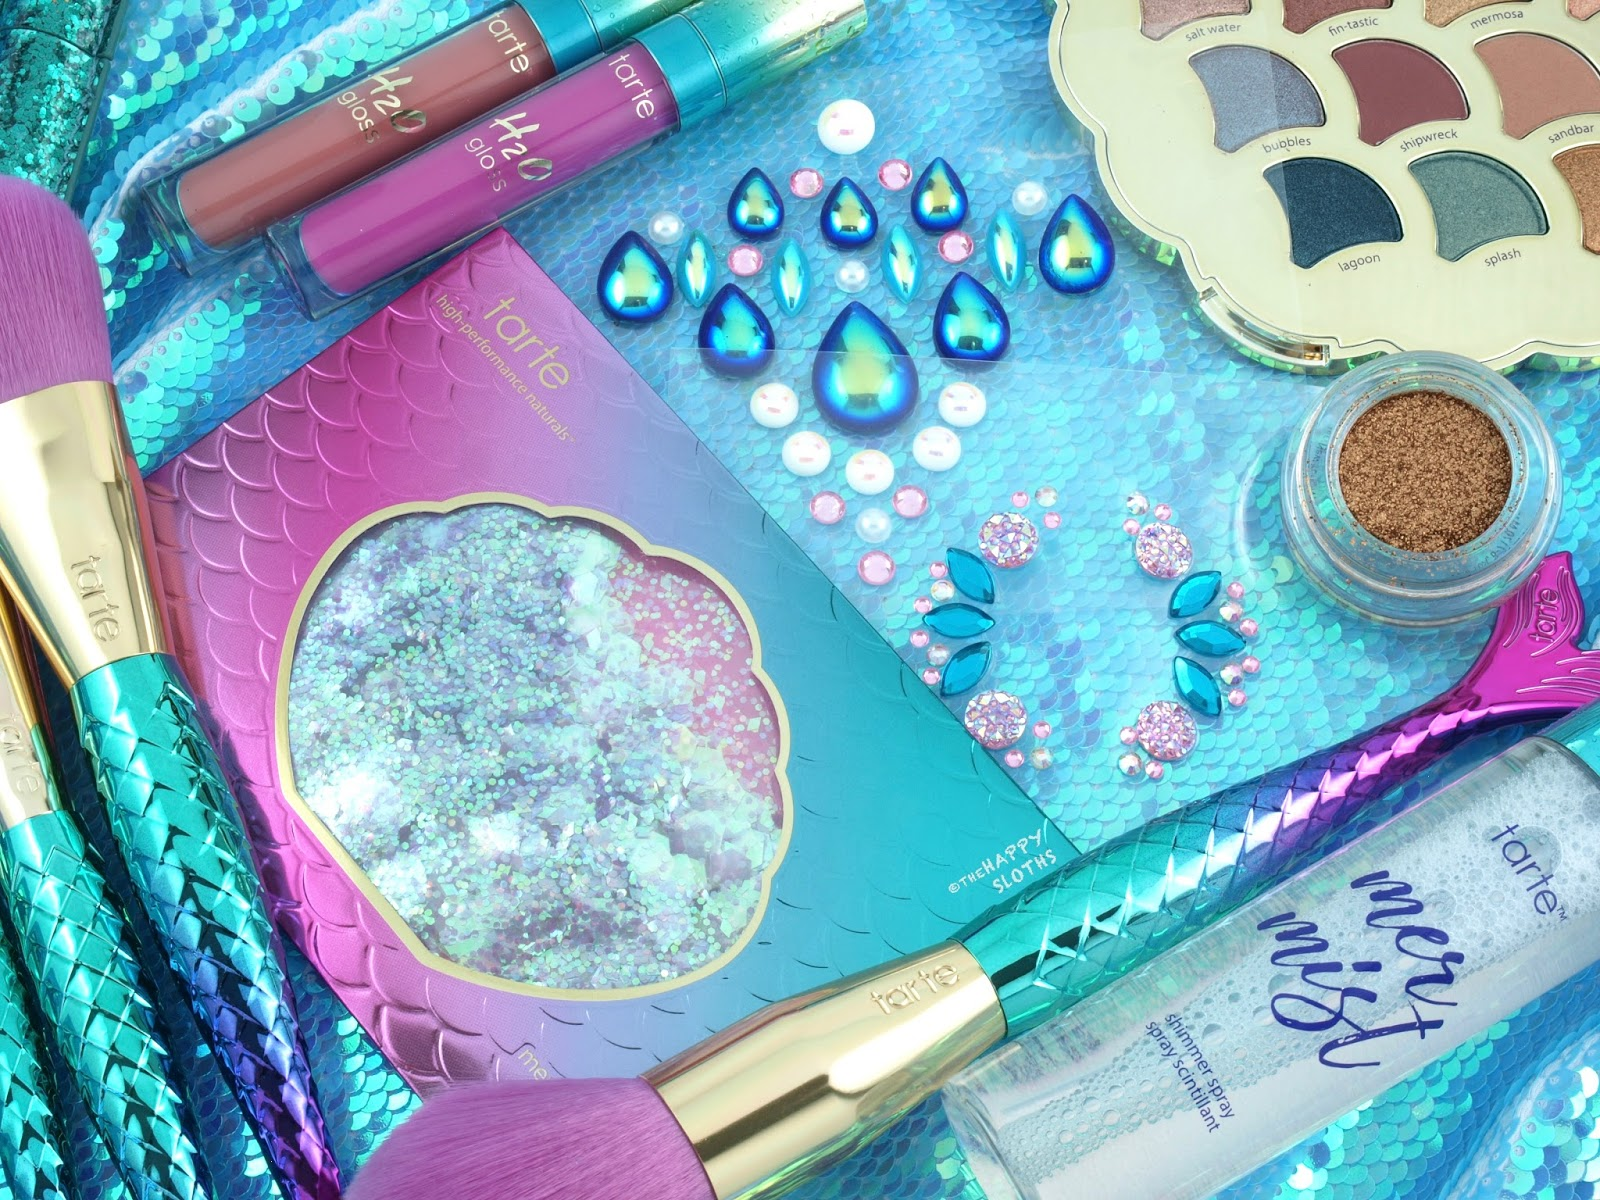 Tarte Mermaid Collection | Mermaid Body Jewels, Face Jewels & Sea-quins: Review